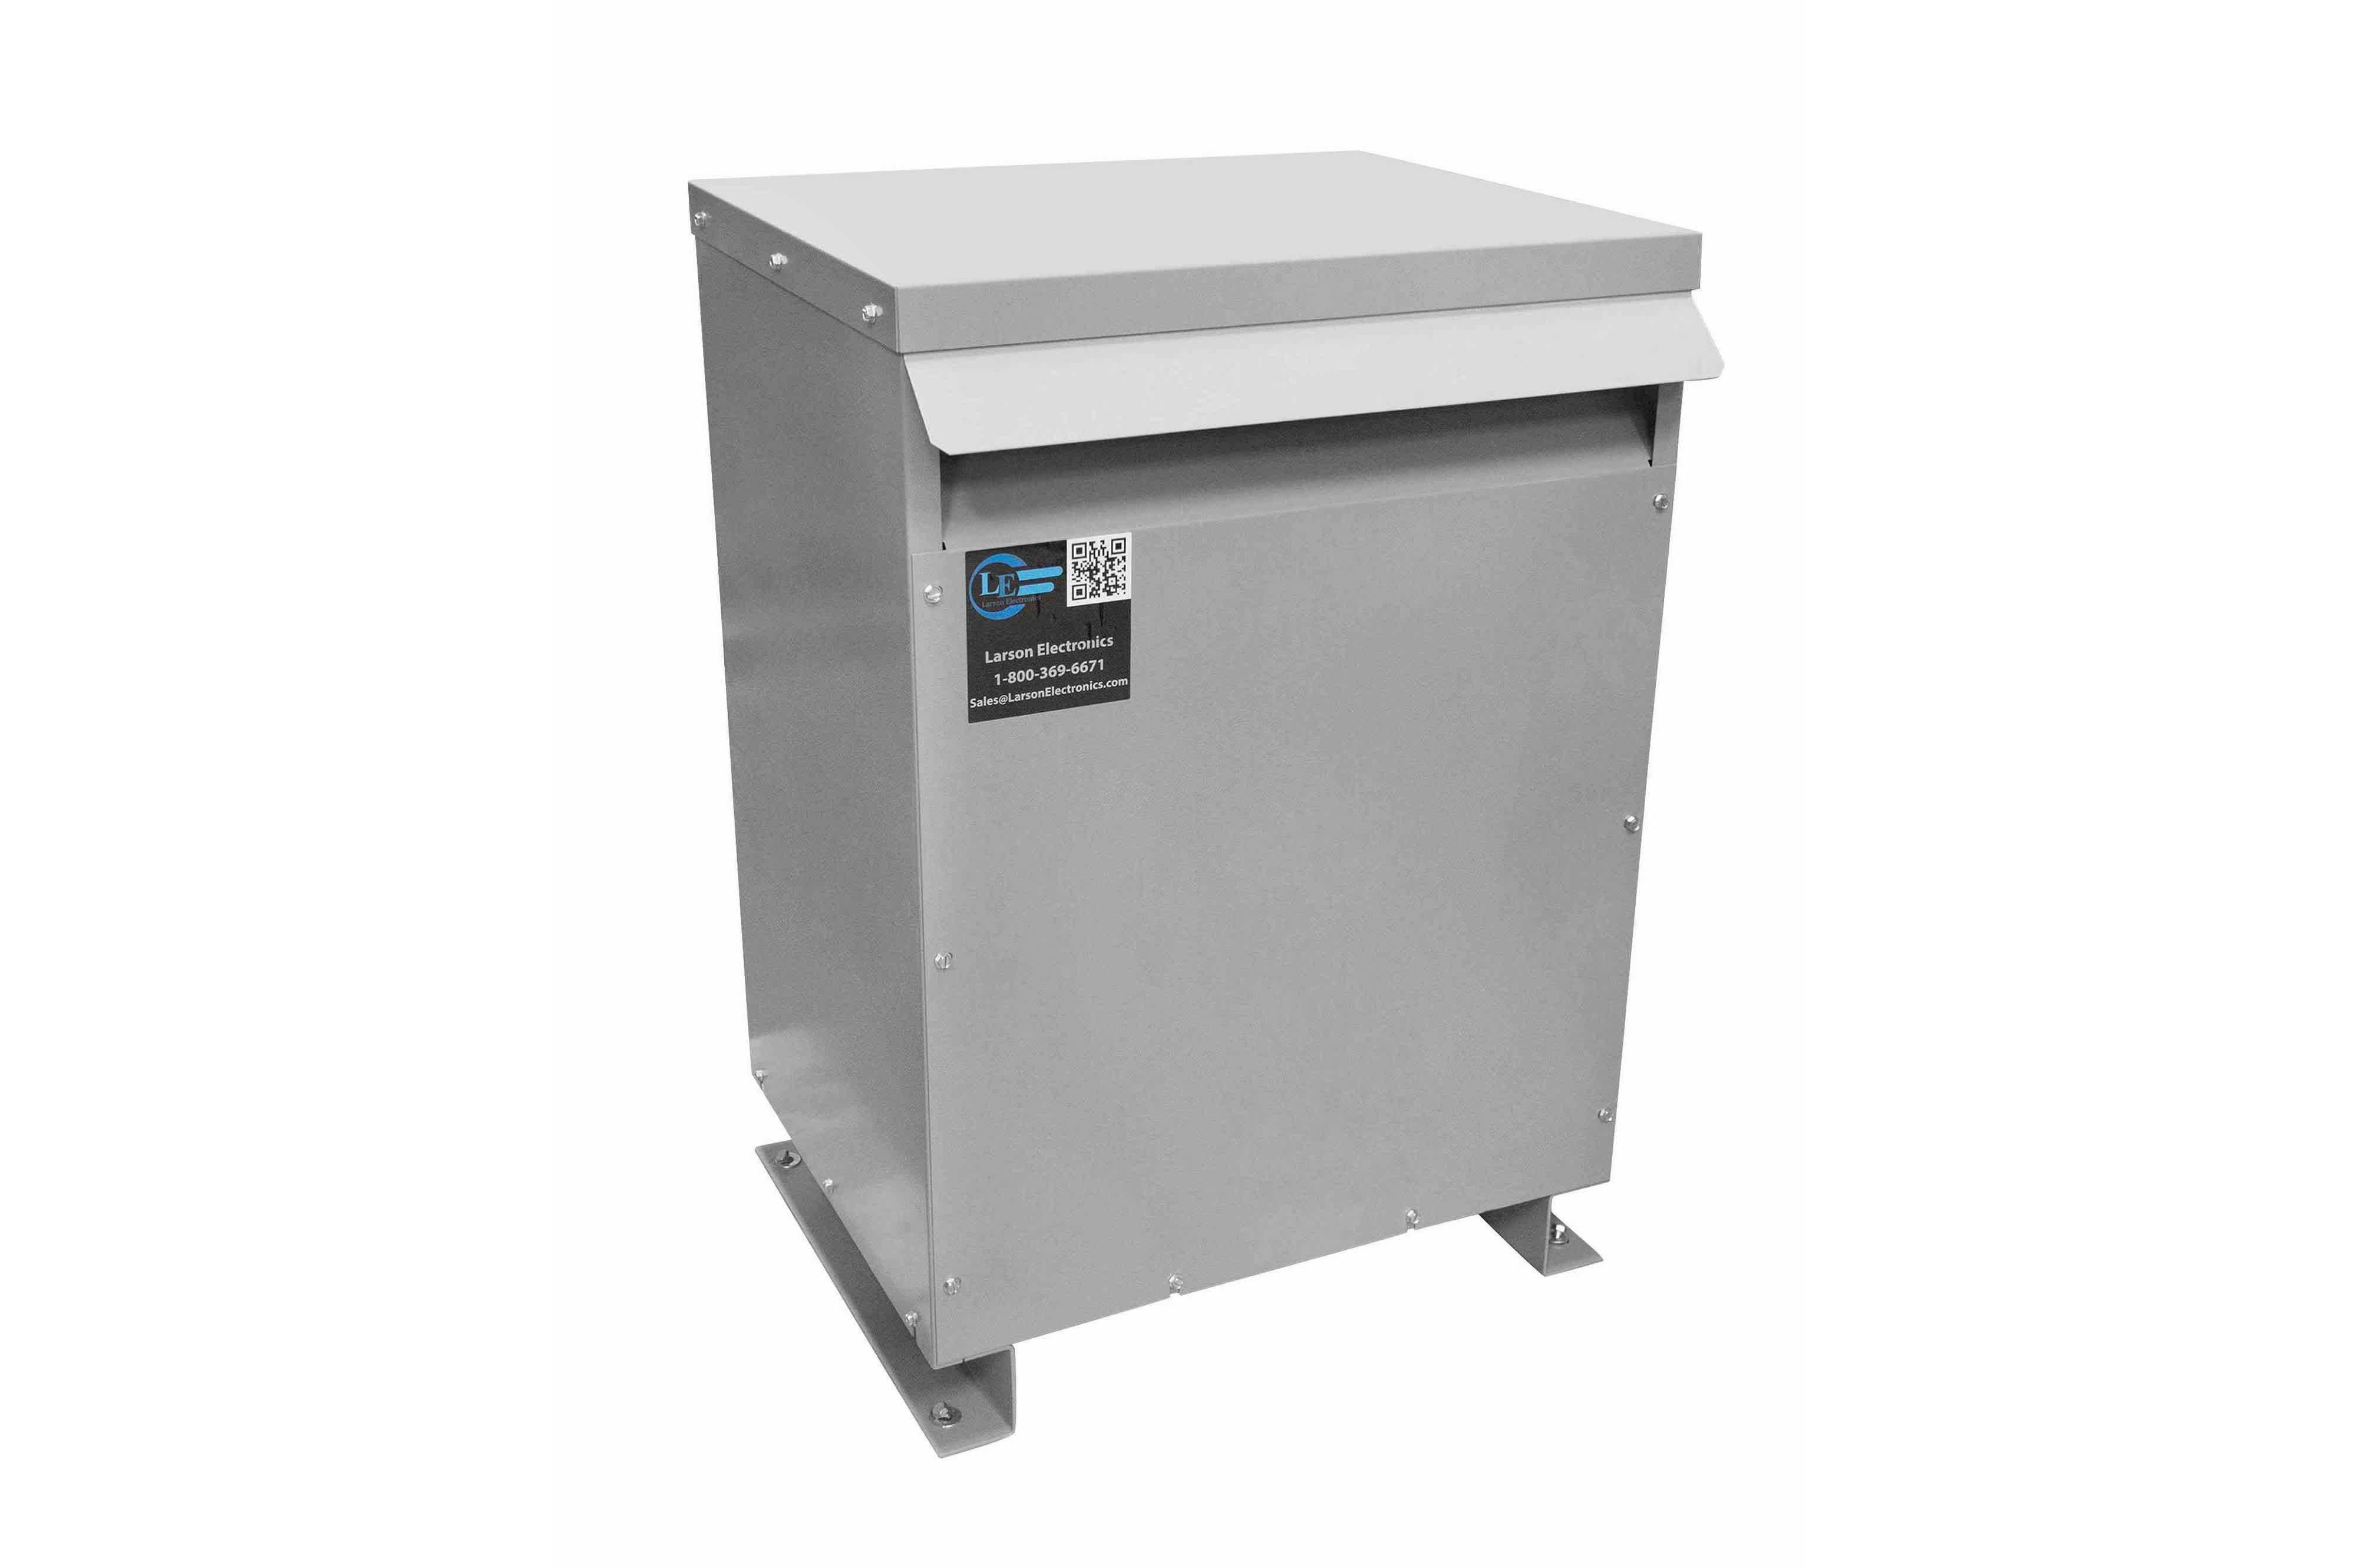 900 kVA 3PH Isolation Transformer, 208V Delta Primary, 400V Delta Secondary, N3R, Ventilated, 60 Hz